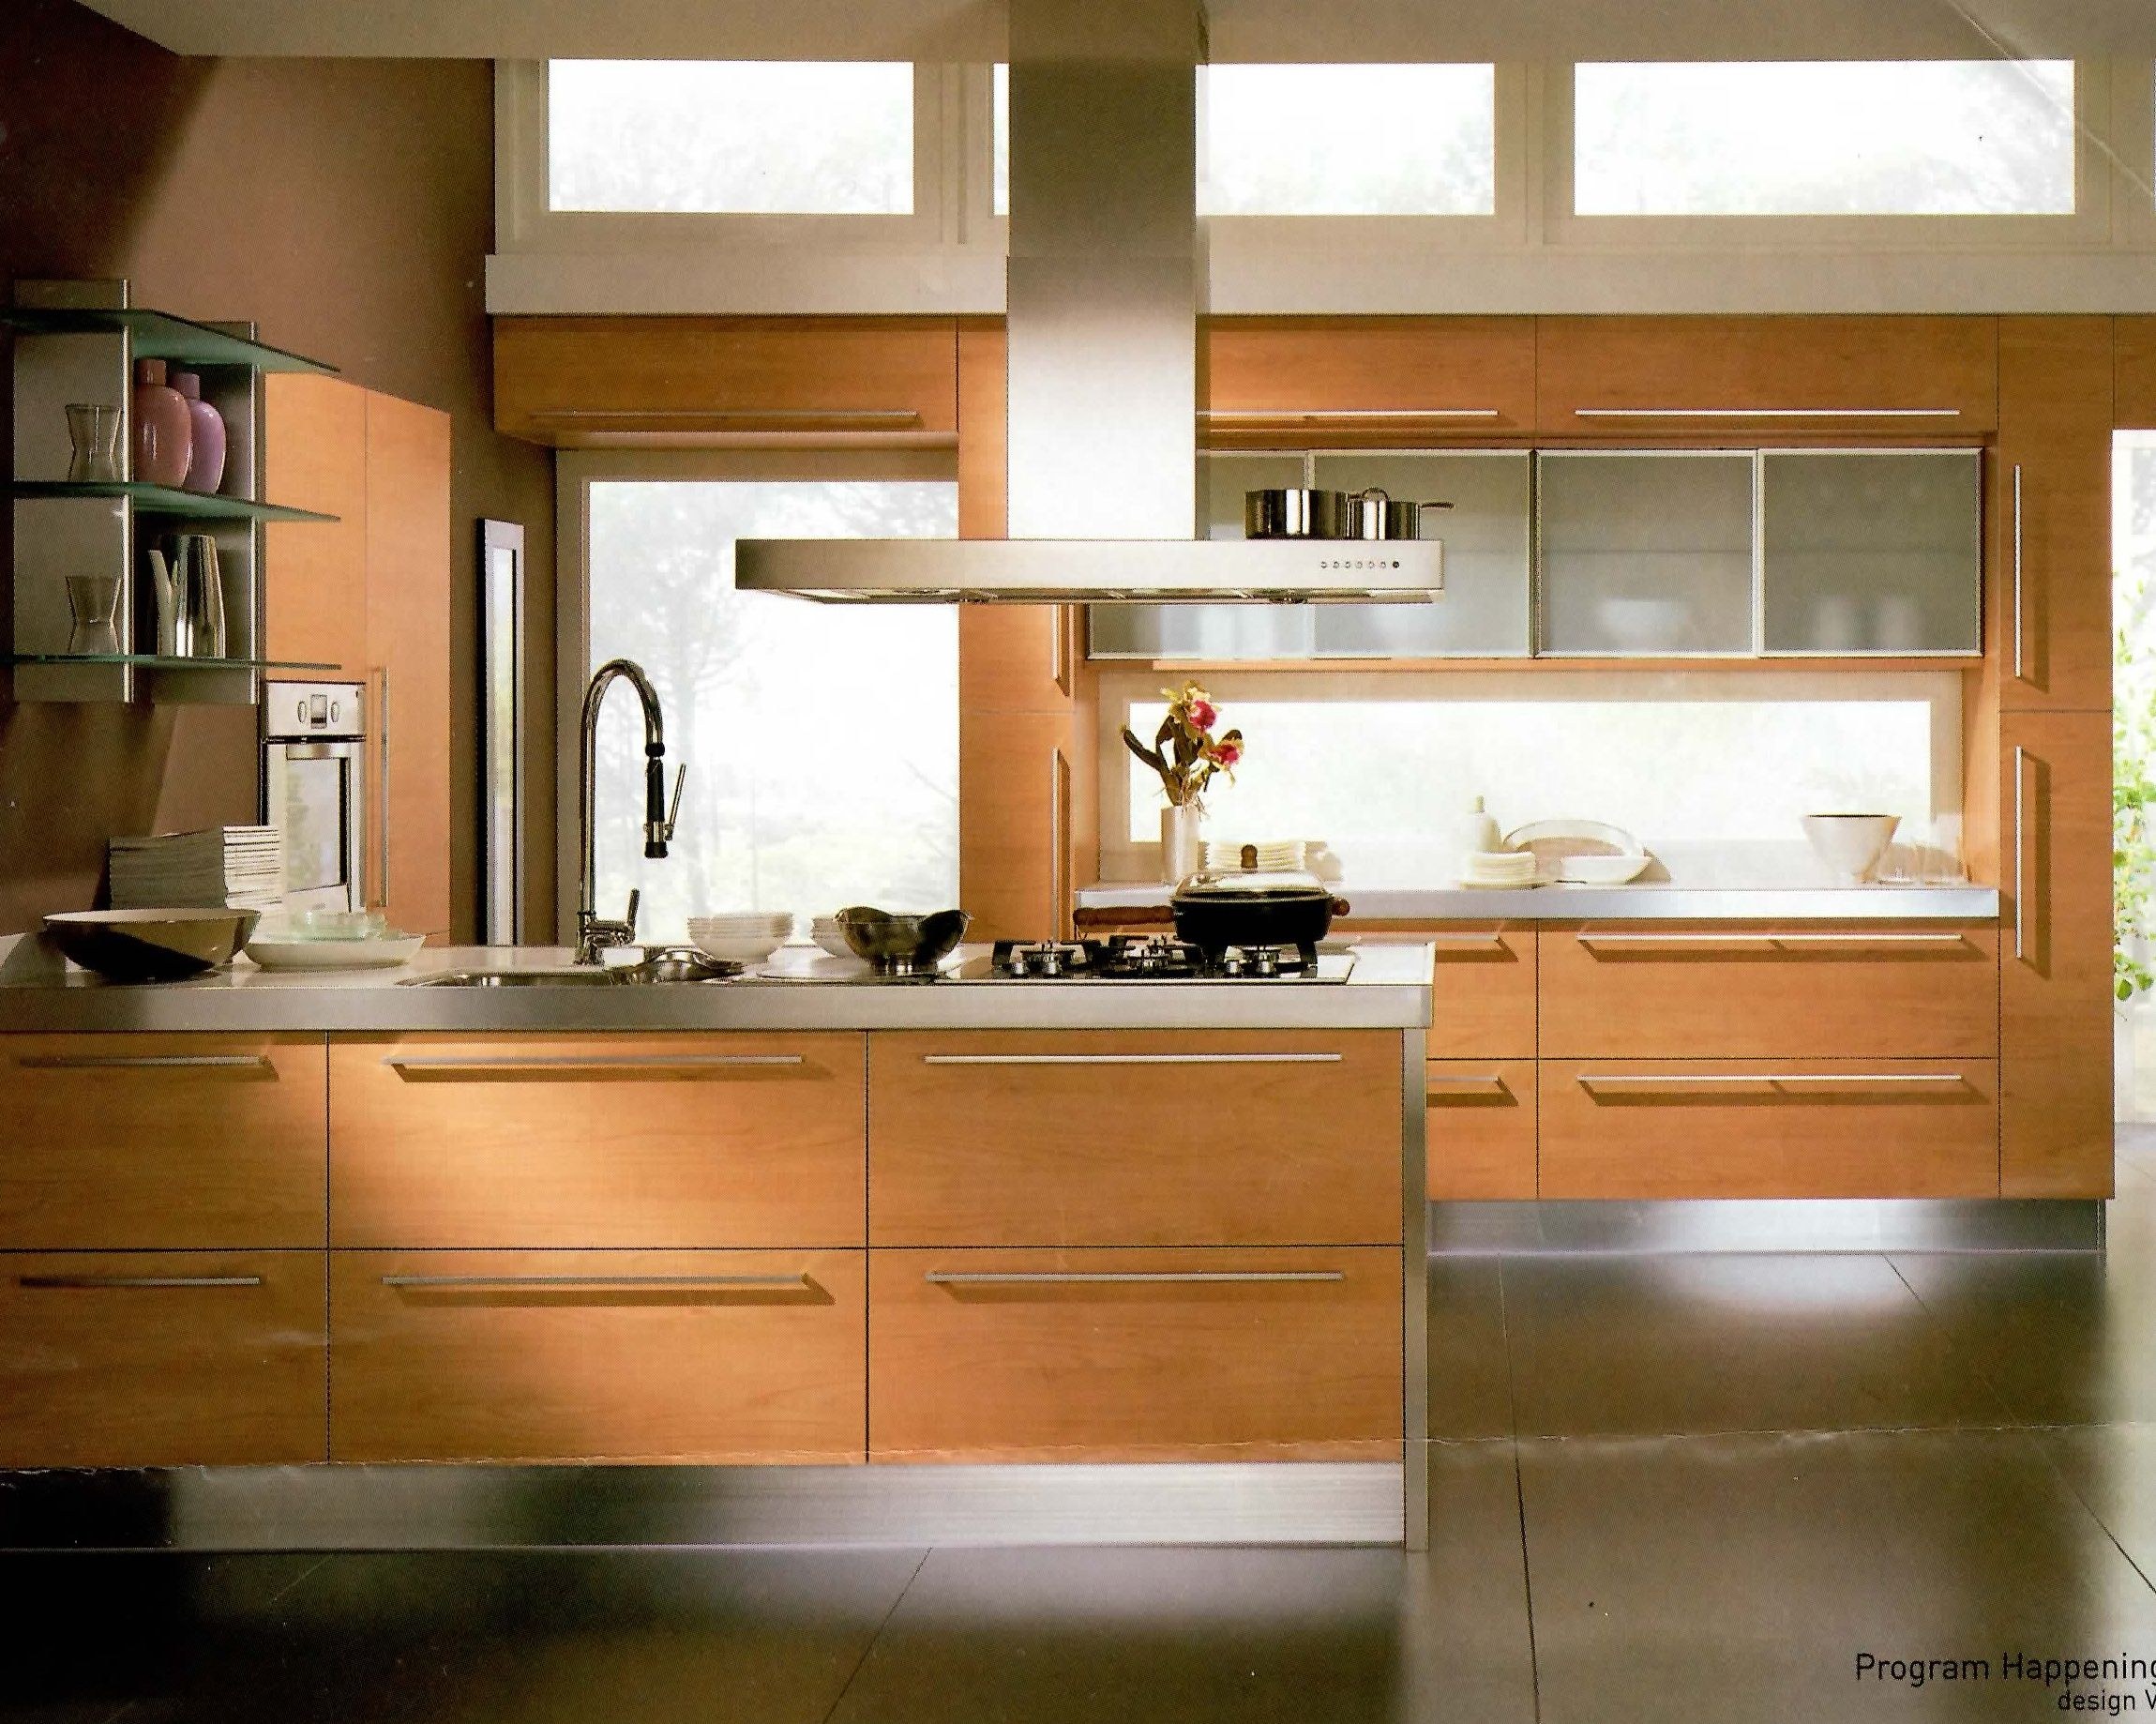 Italian Designed Scavolini Kitchen With White Granite And Beech Wood Upper Cabinets In Frosted